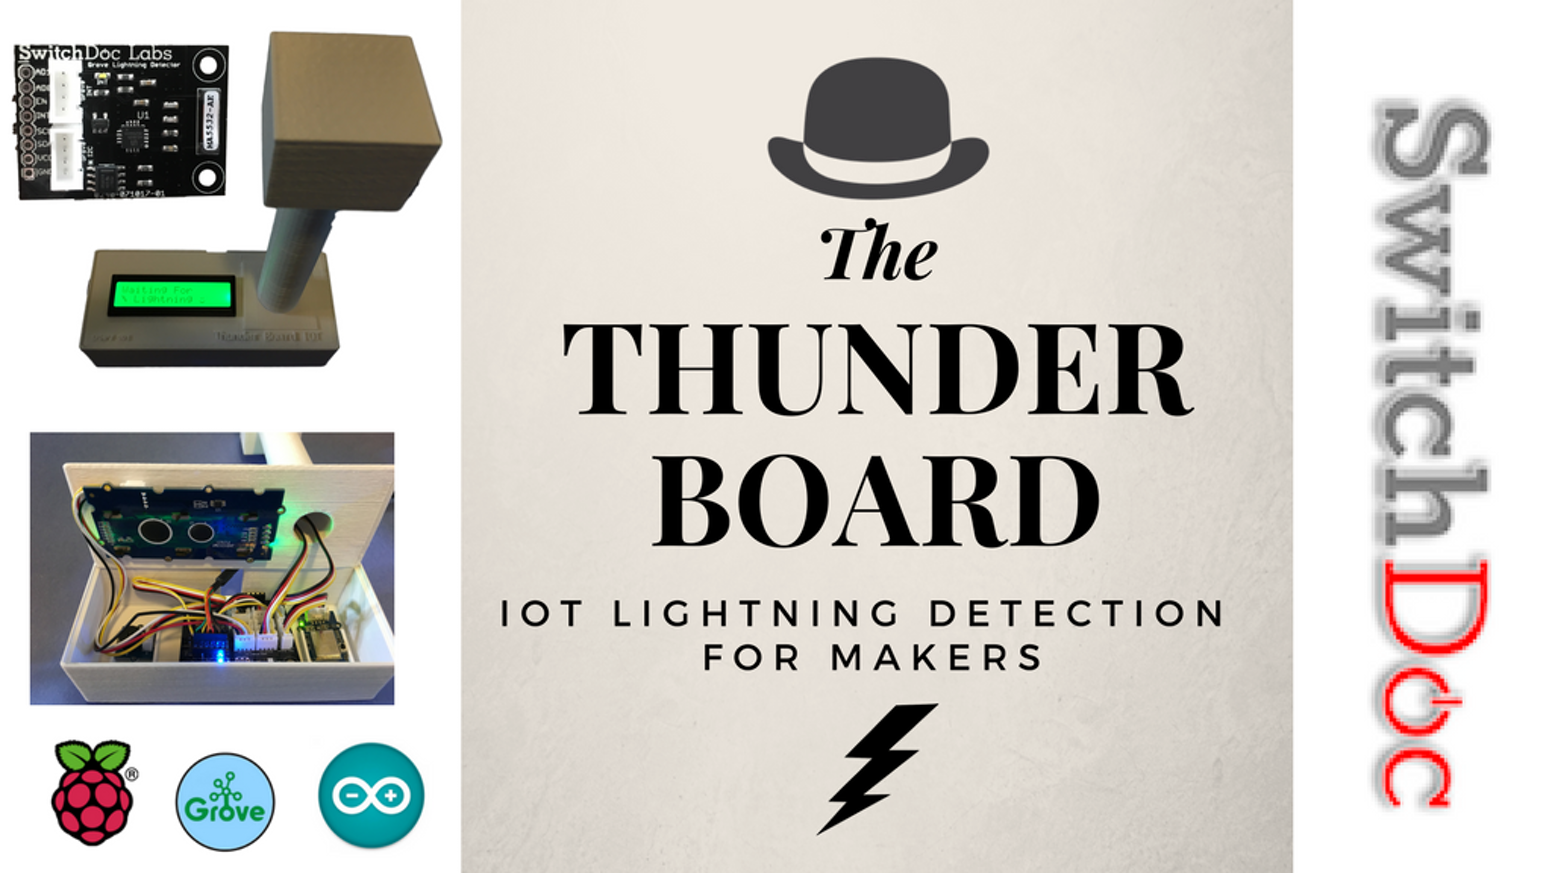 The thunder board iot lightning detection for makers by